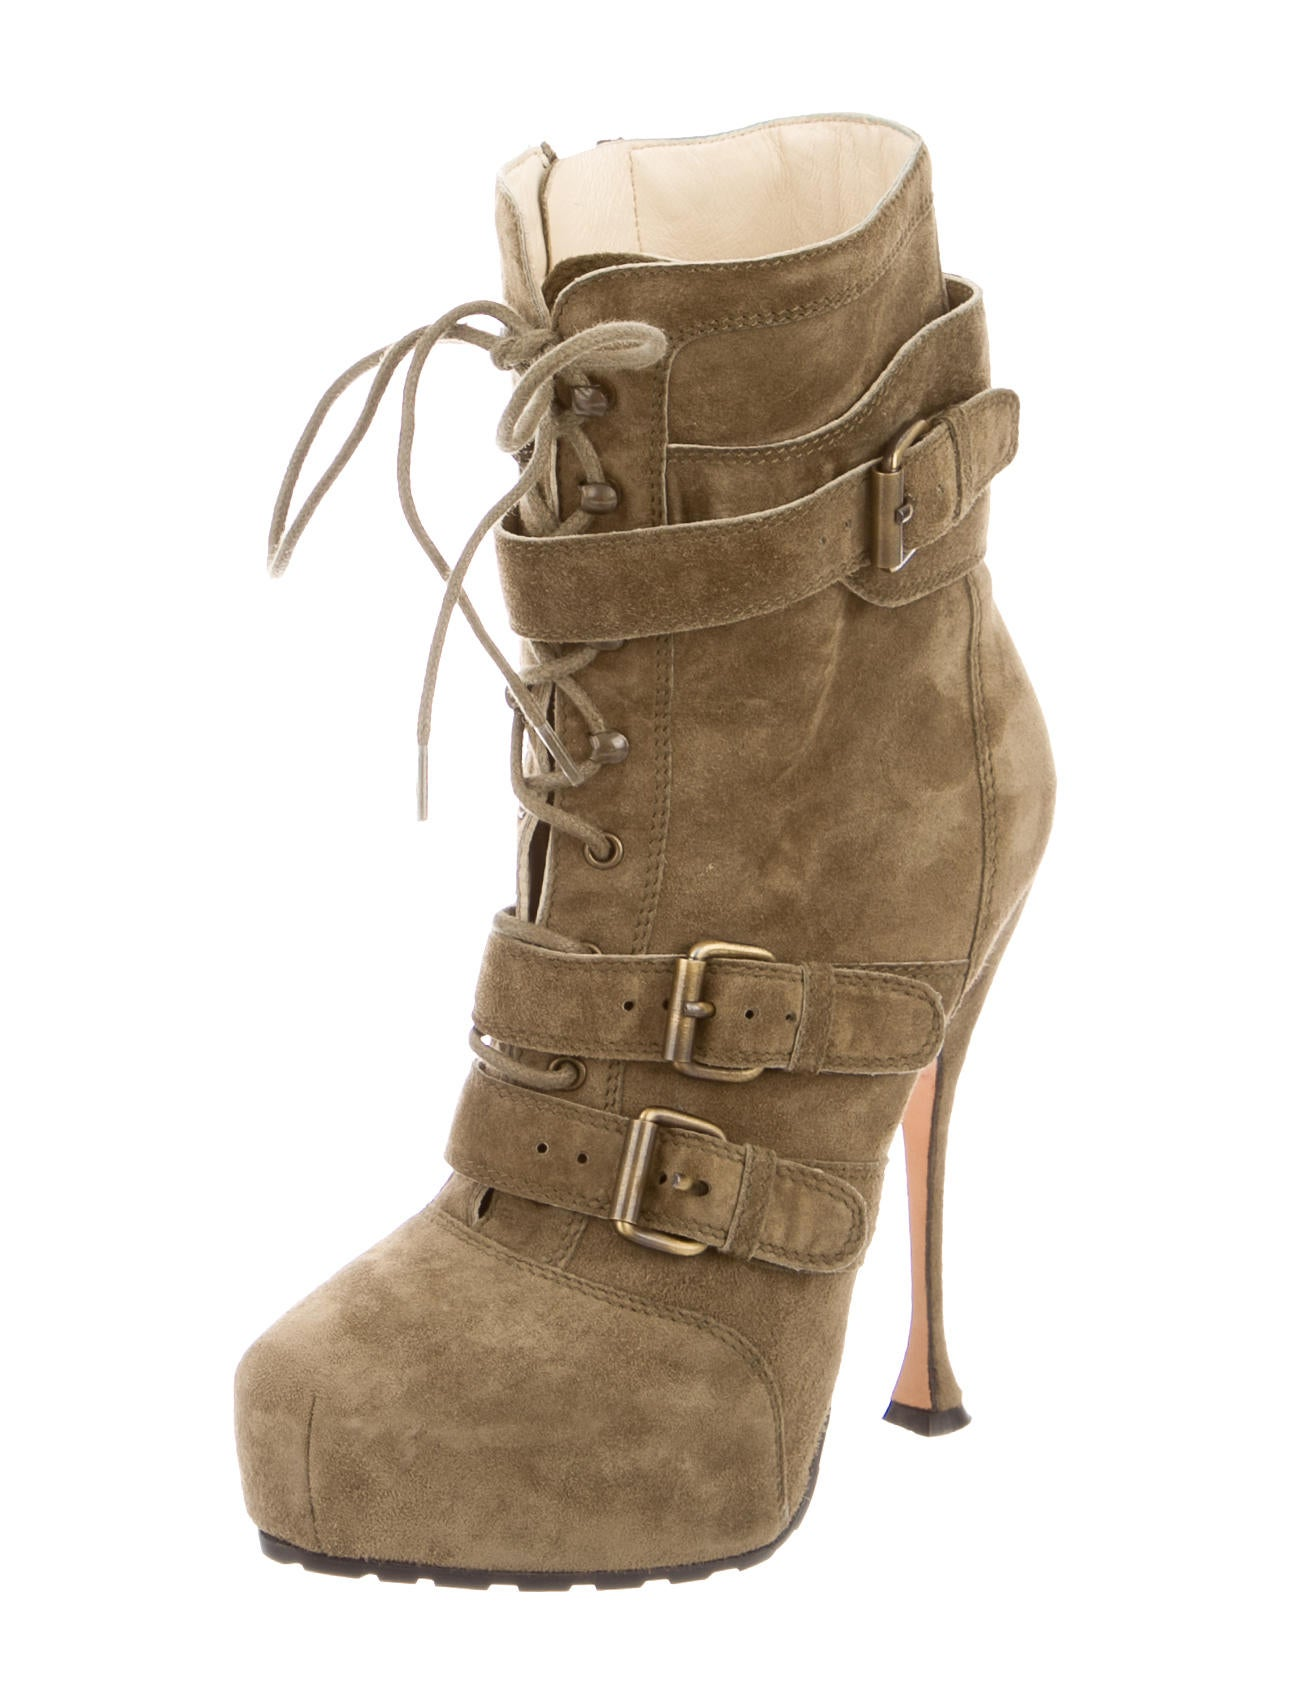 brian atwood suede lace up ankle boots shoes bri22913